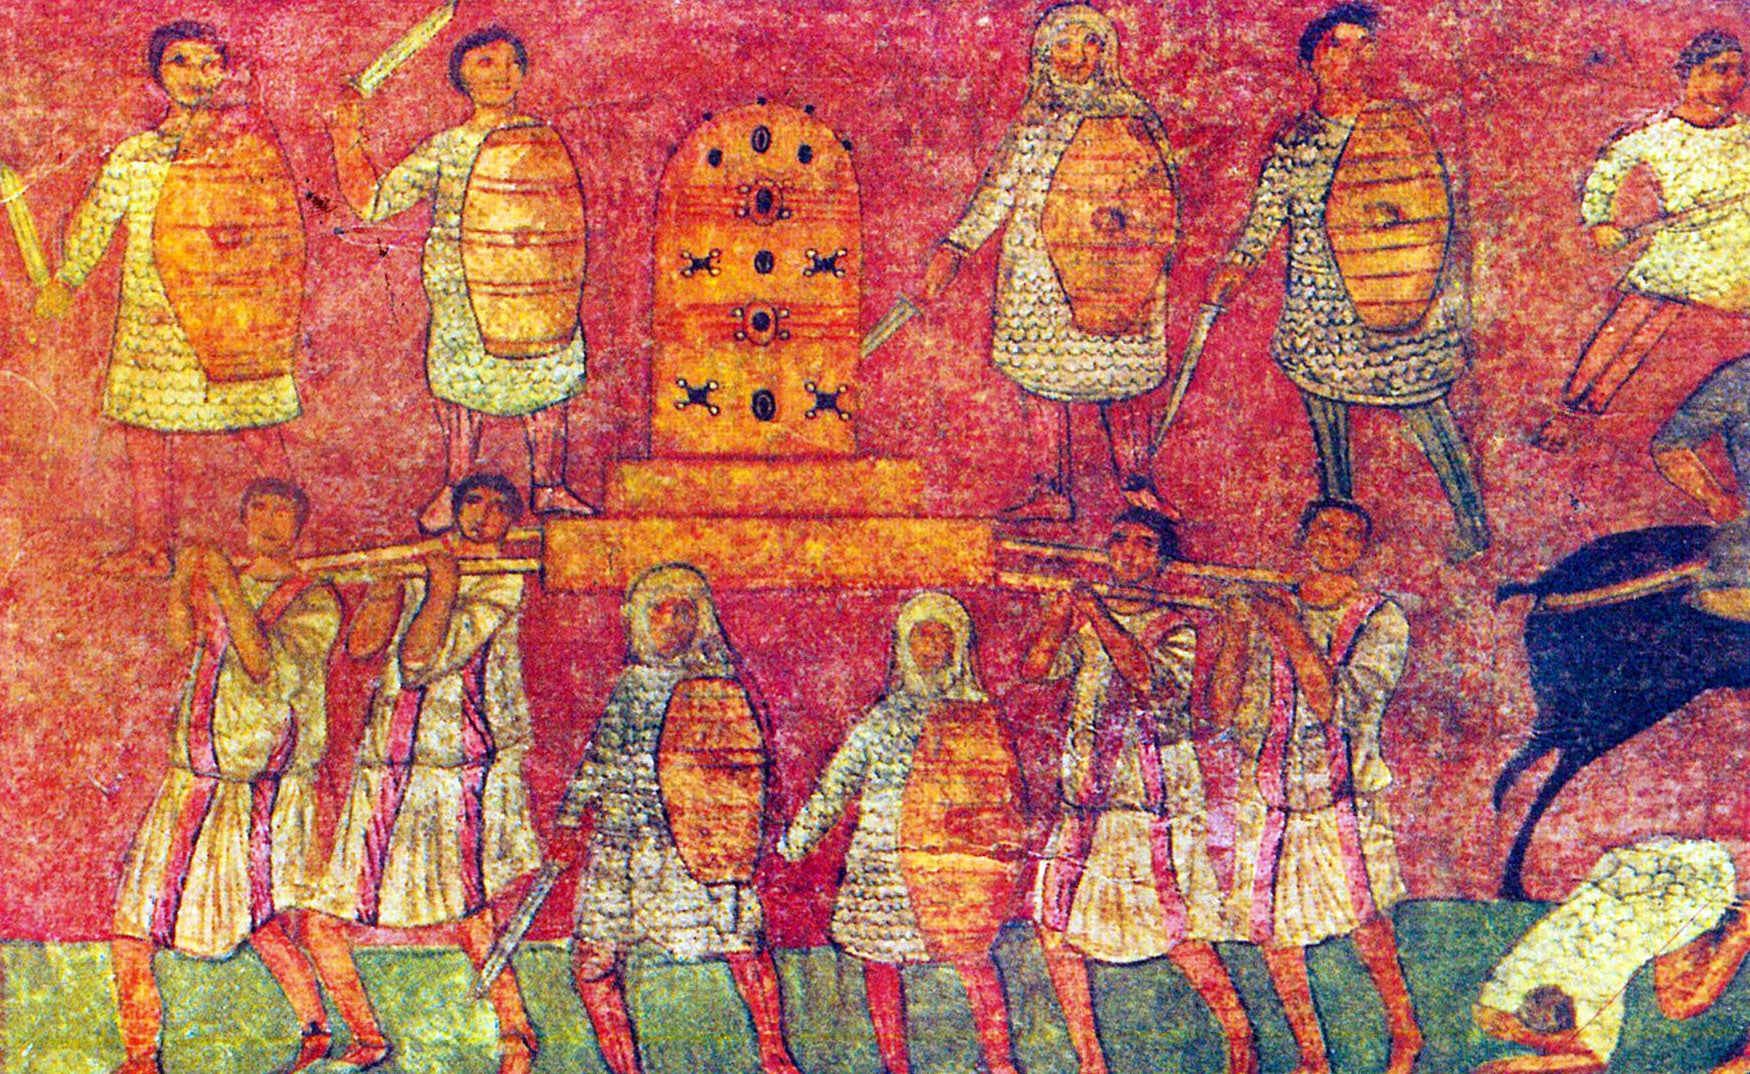 Dura Europos Textiles In Wall Paintings